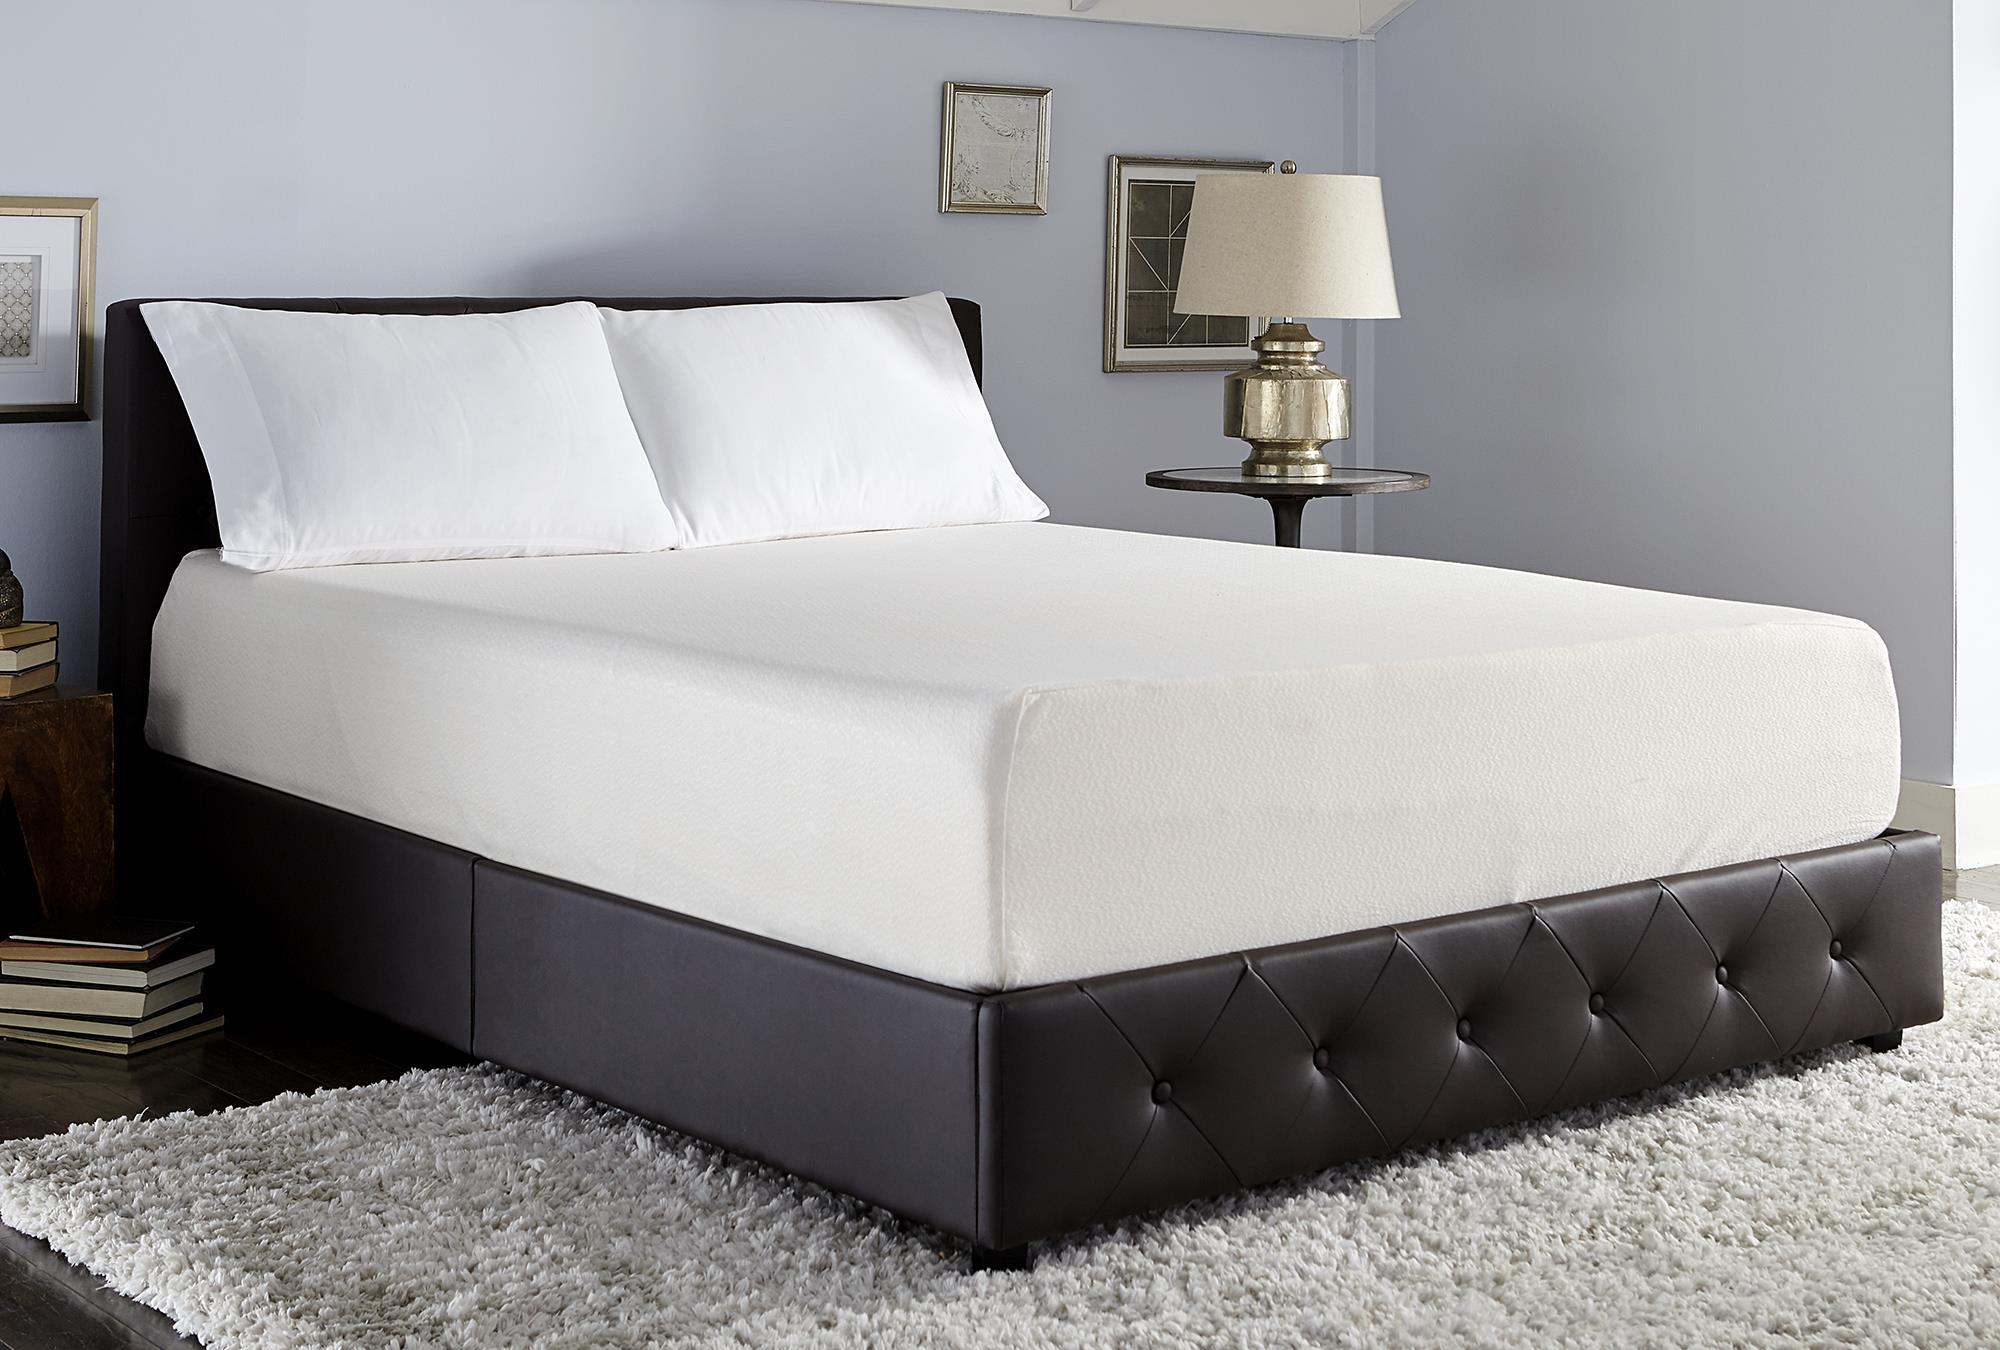 Signature Sleep Memoir 12 12in Memory Foam Mattress With Certipur Us Certified Multiple Sizes Your Way Online Ping Earn Points On Tools